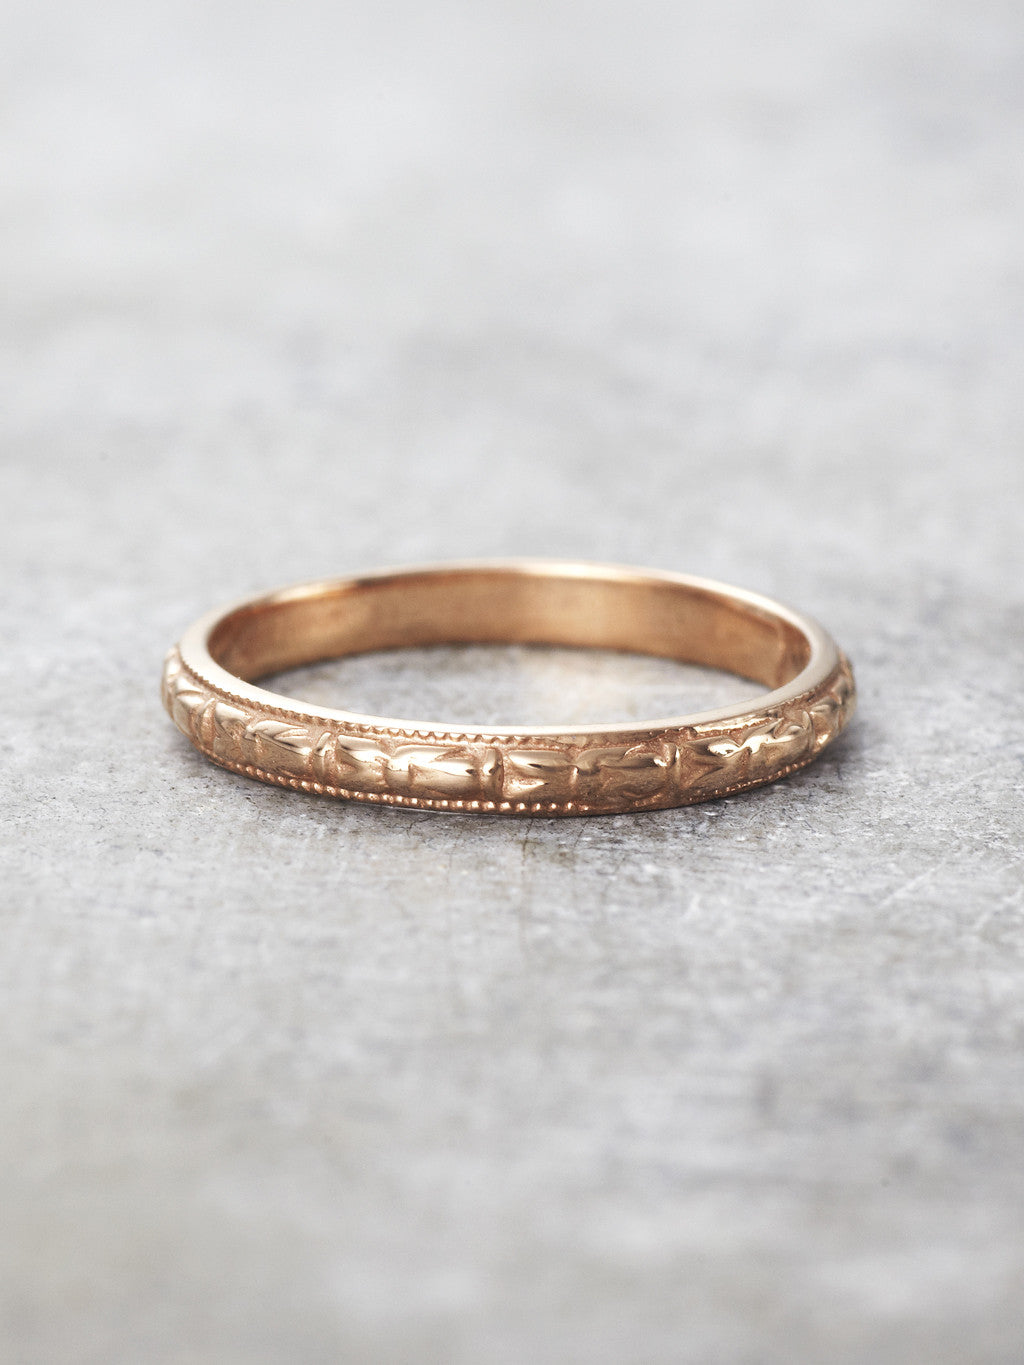 14K Antique Engraved Wedding Ring Band - Rose Gold